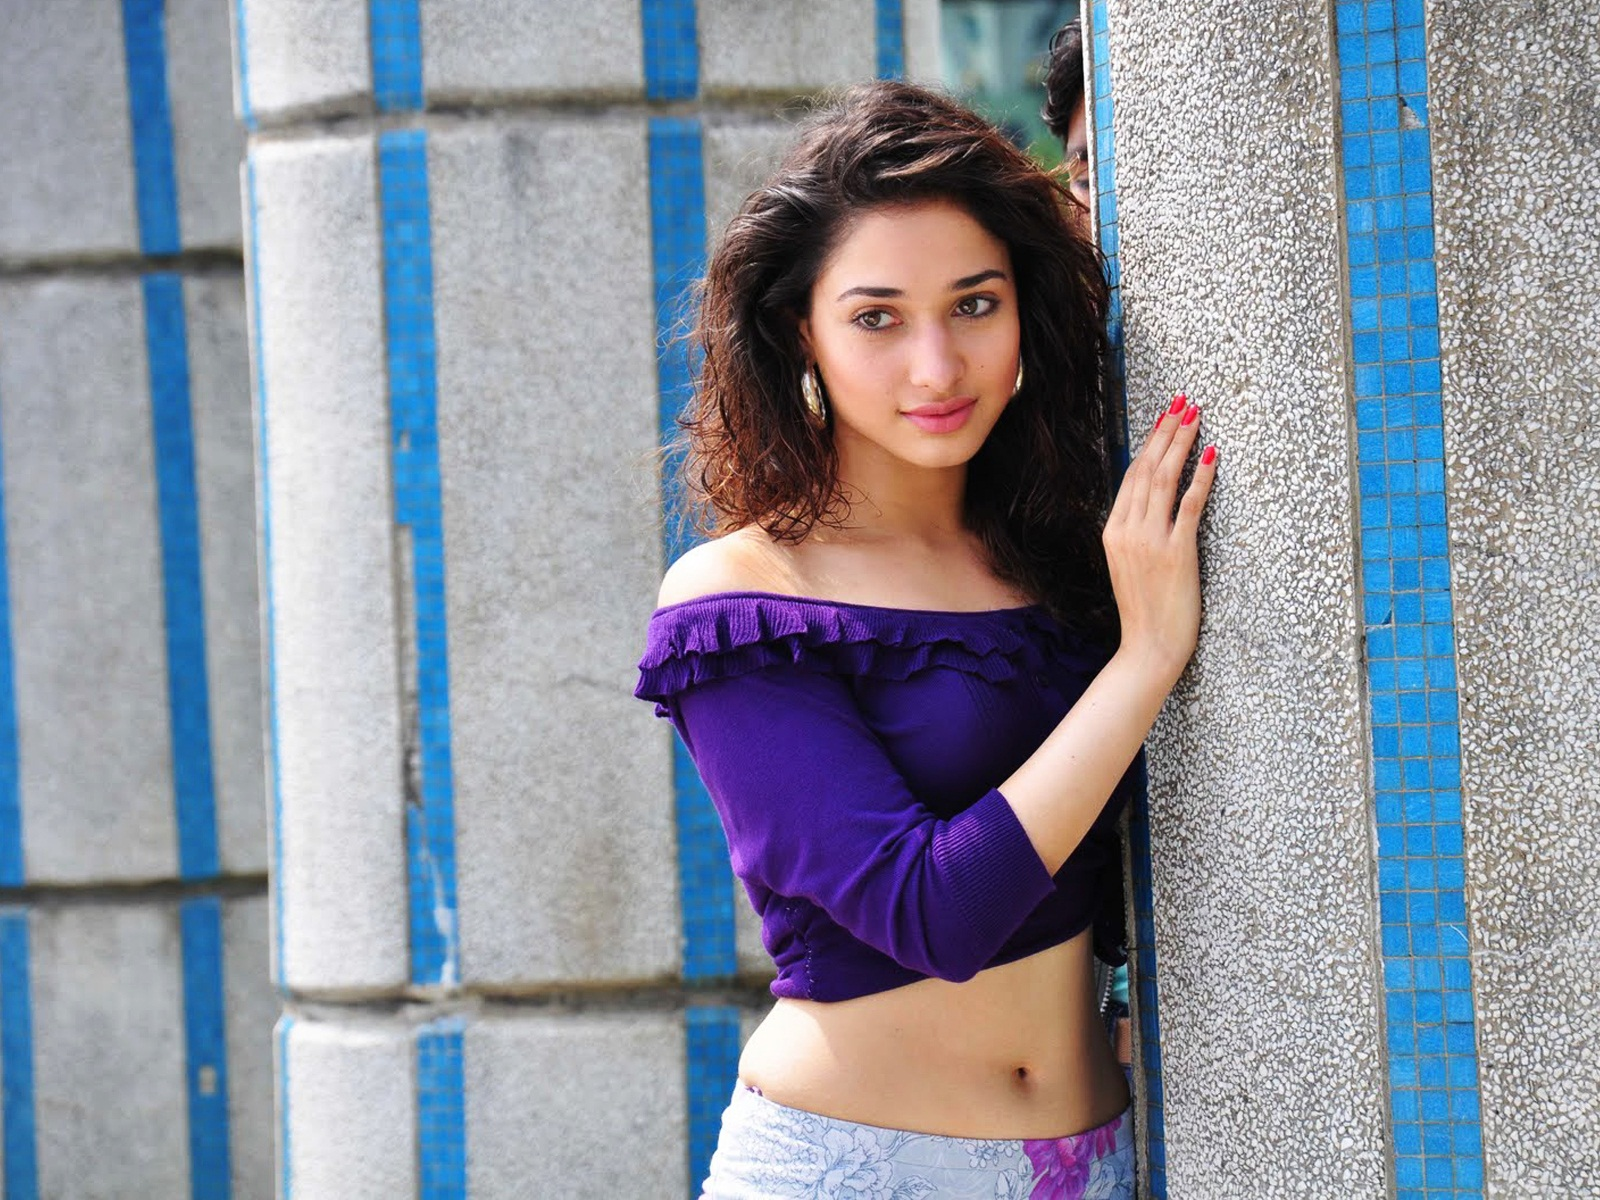 Tamana Hd: Tamanna Hd Images Download